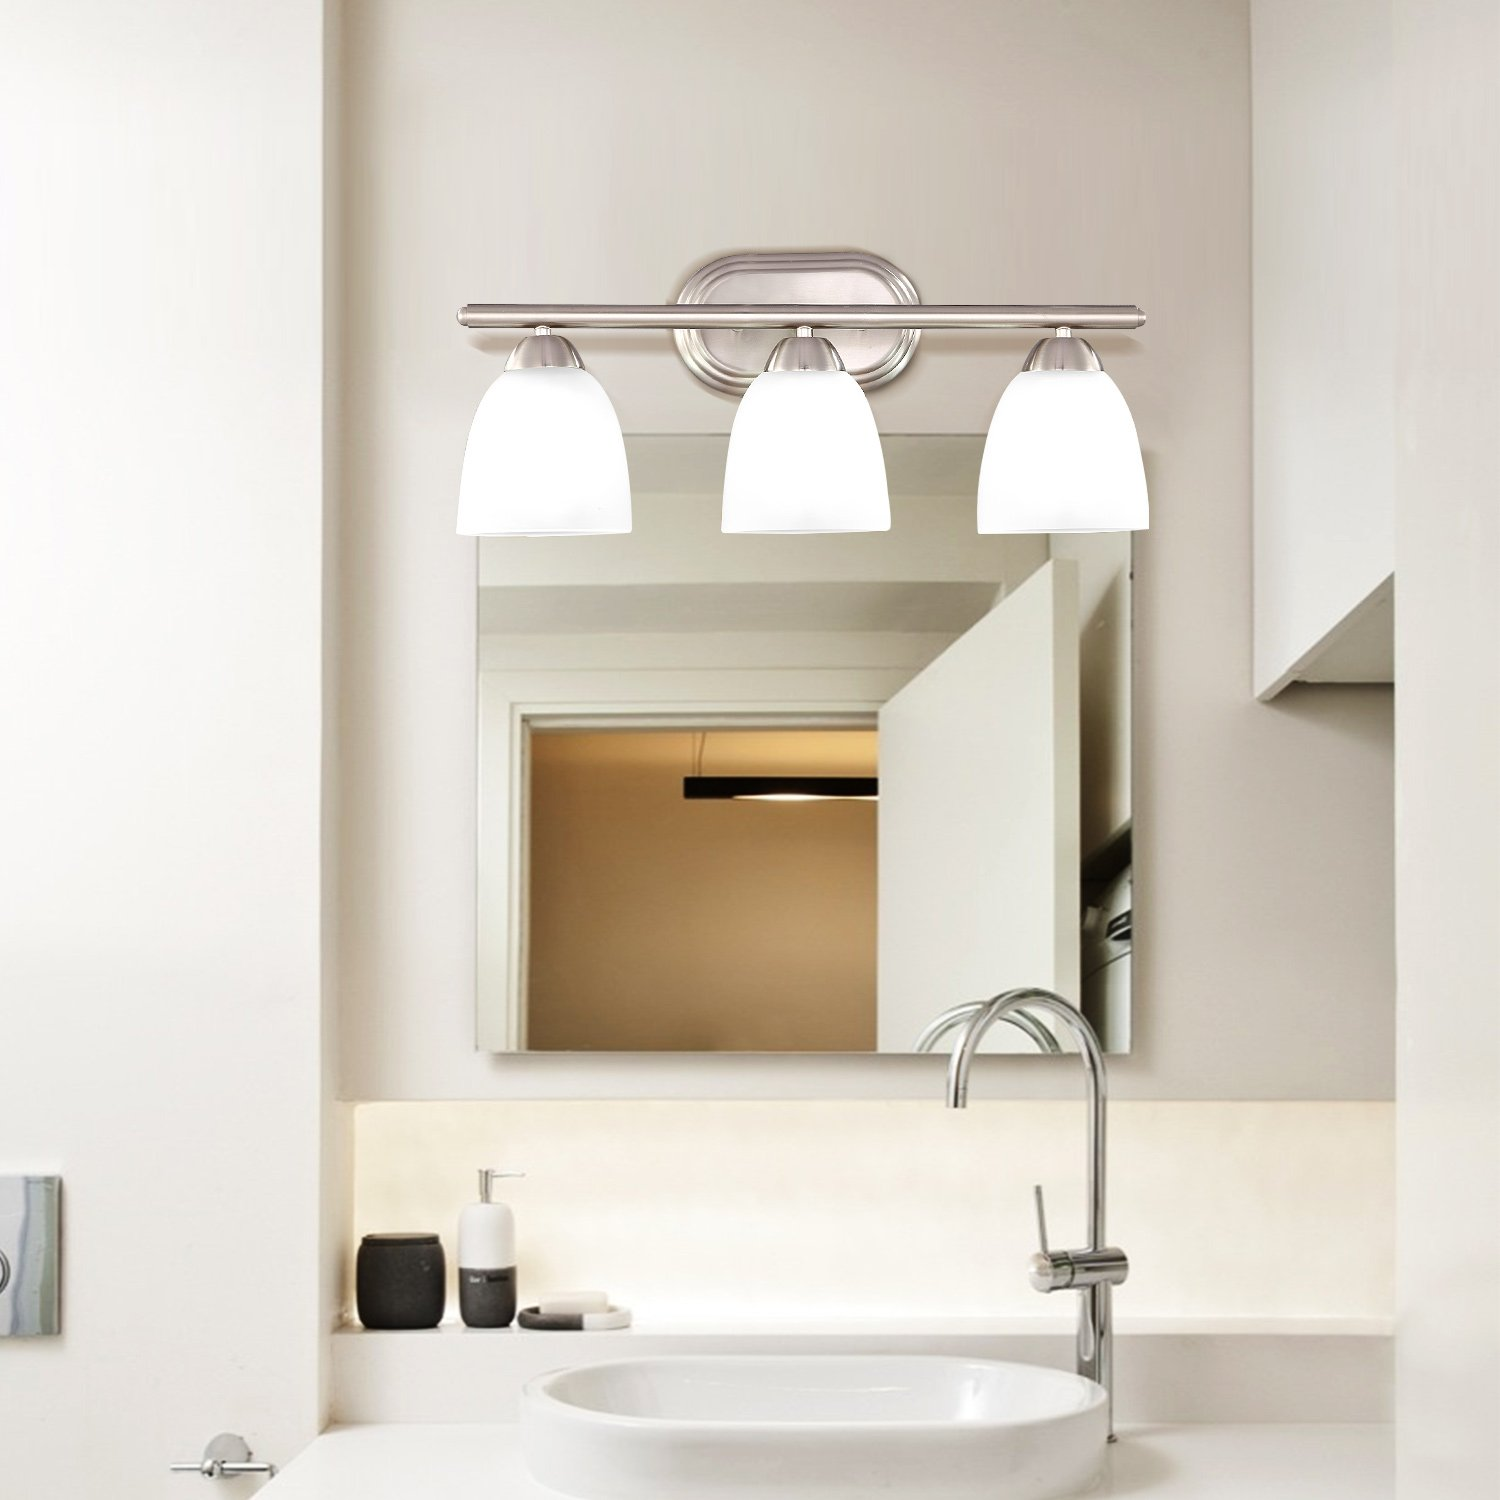 2-Light Bath Interior Lighting EPOWP Wall SconceLight Fixture Brushed Nickel with Frosted Glass Shade